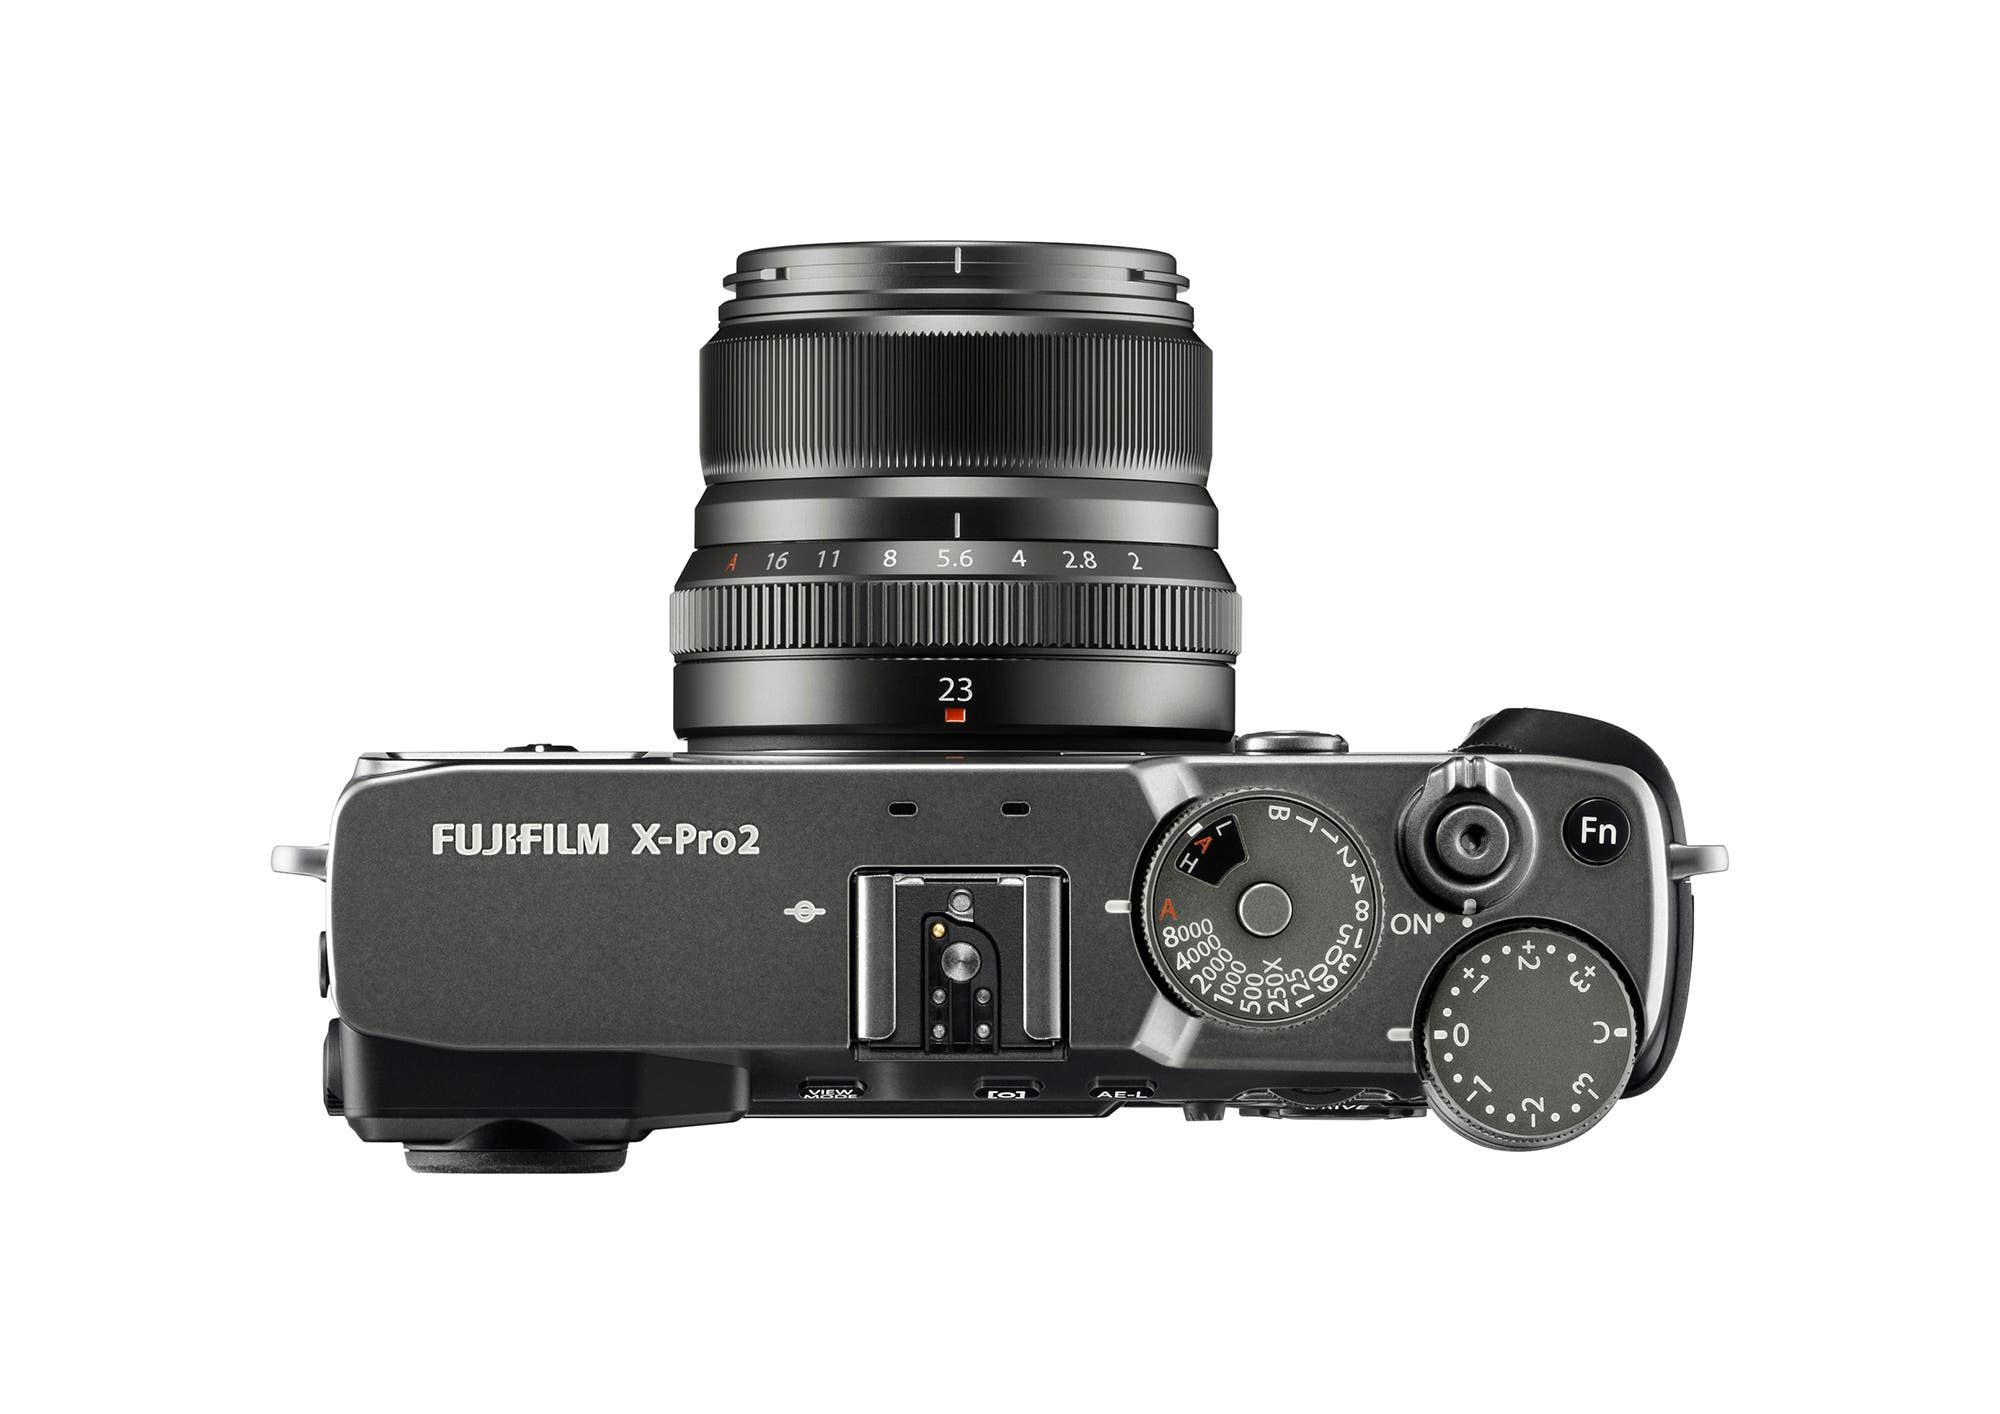 Fujifilm Launches New Graphite Edition X Pro2 T2 And Xf 23mm F2 Wr Be Sure To Check Out Our Pro 2 R Reviews